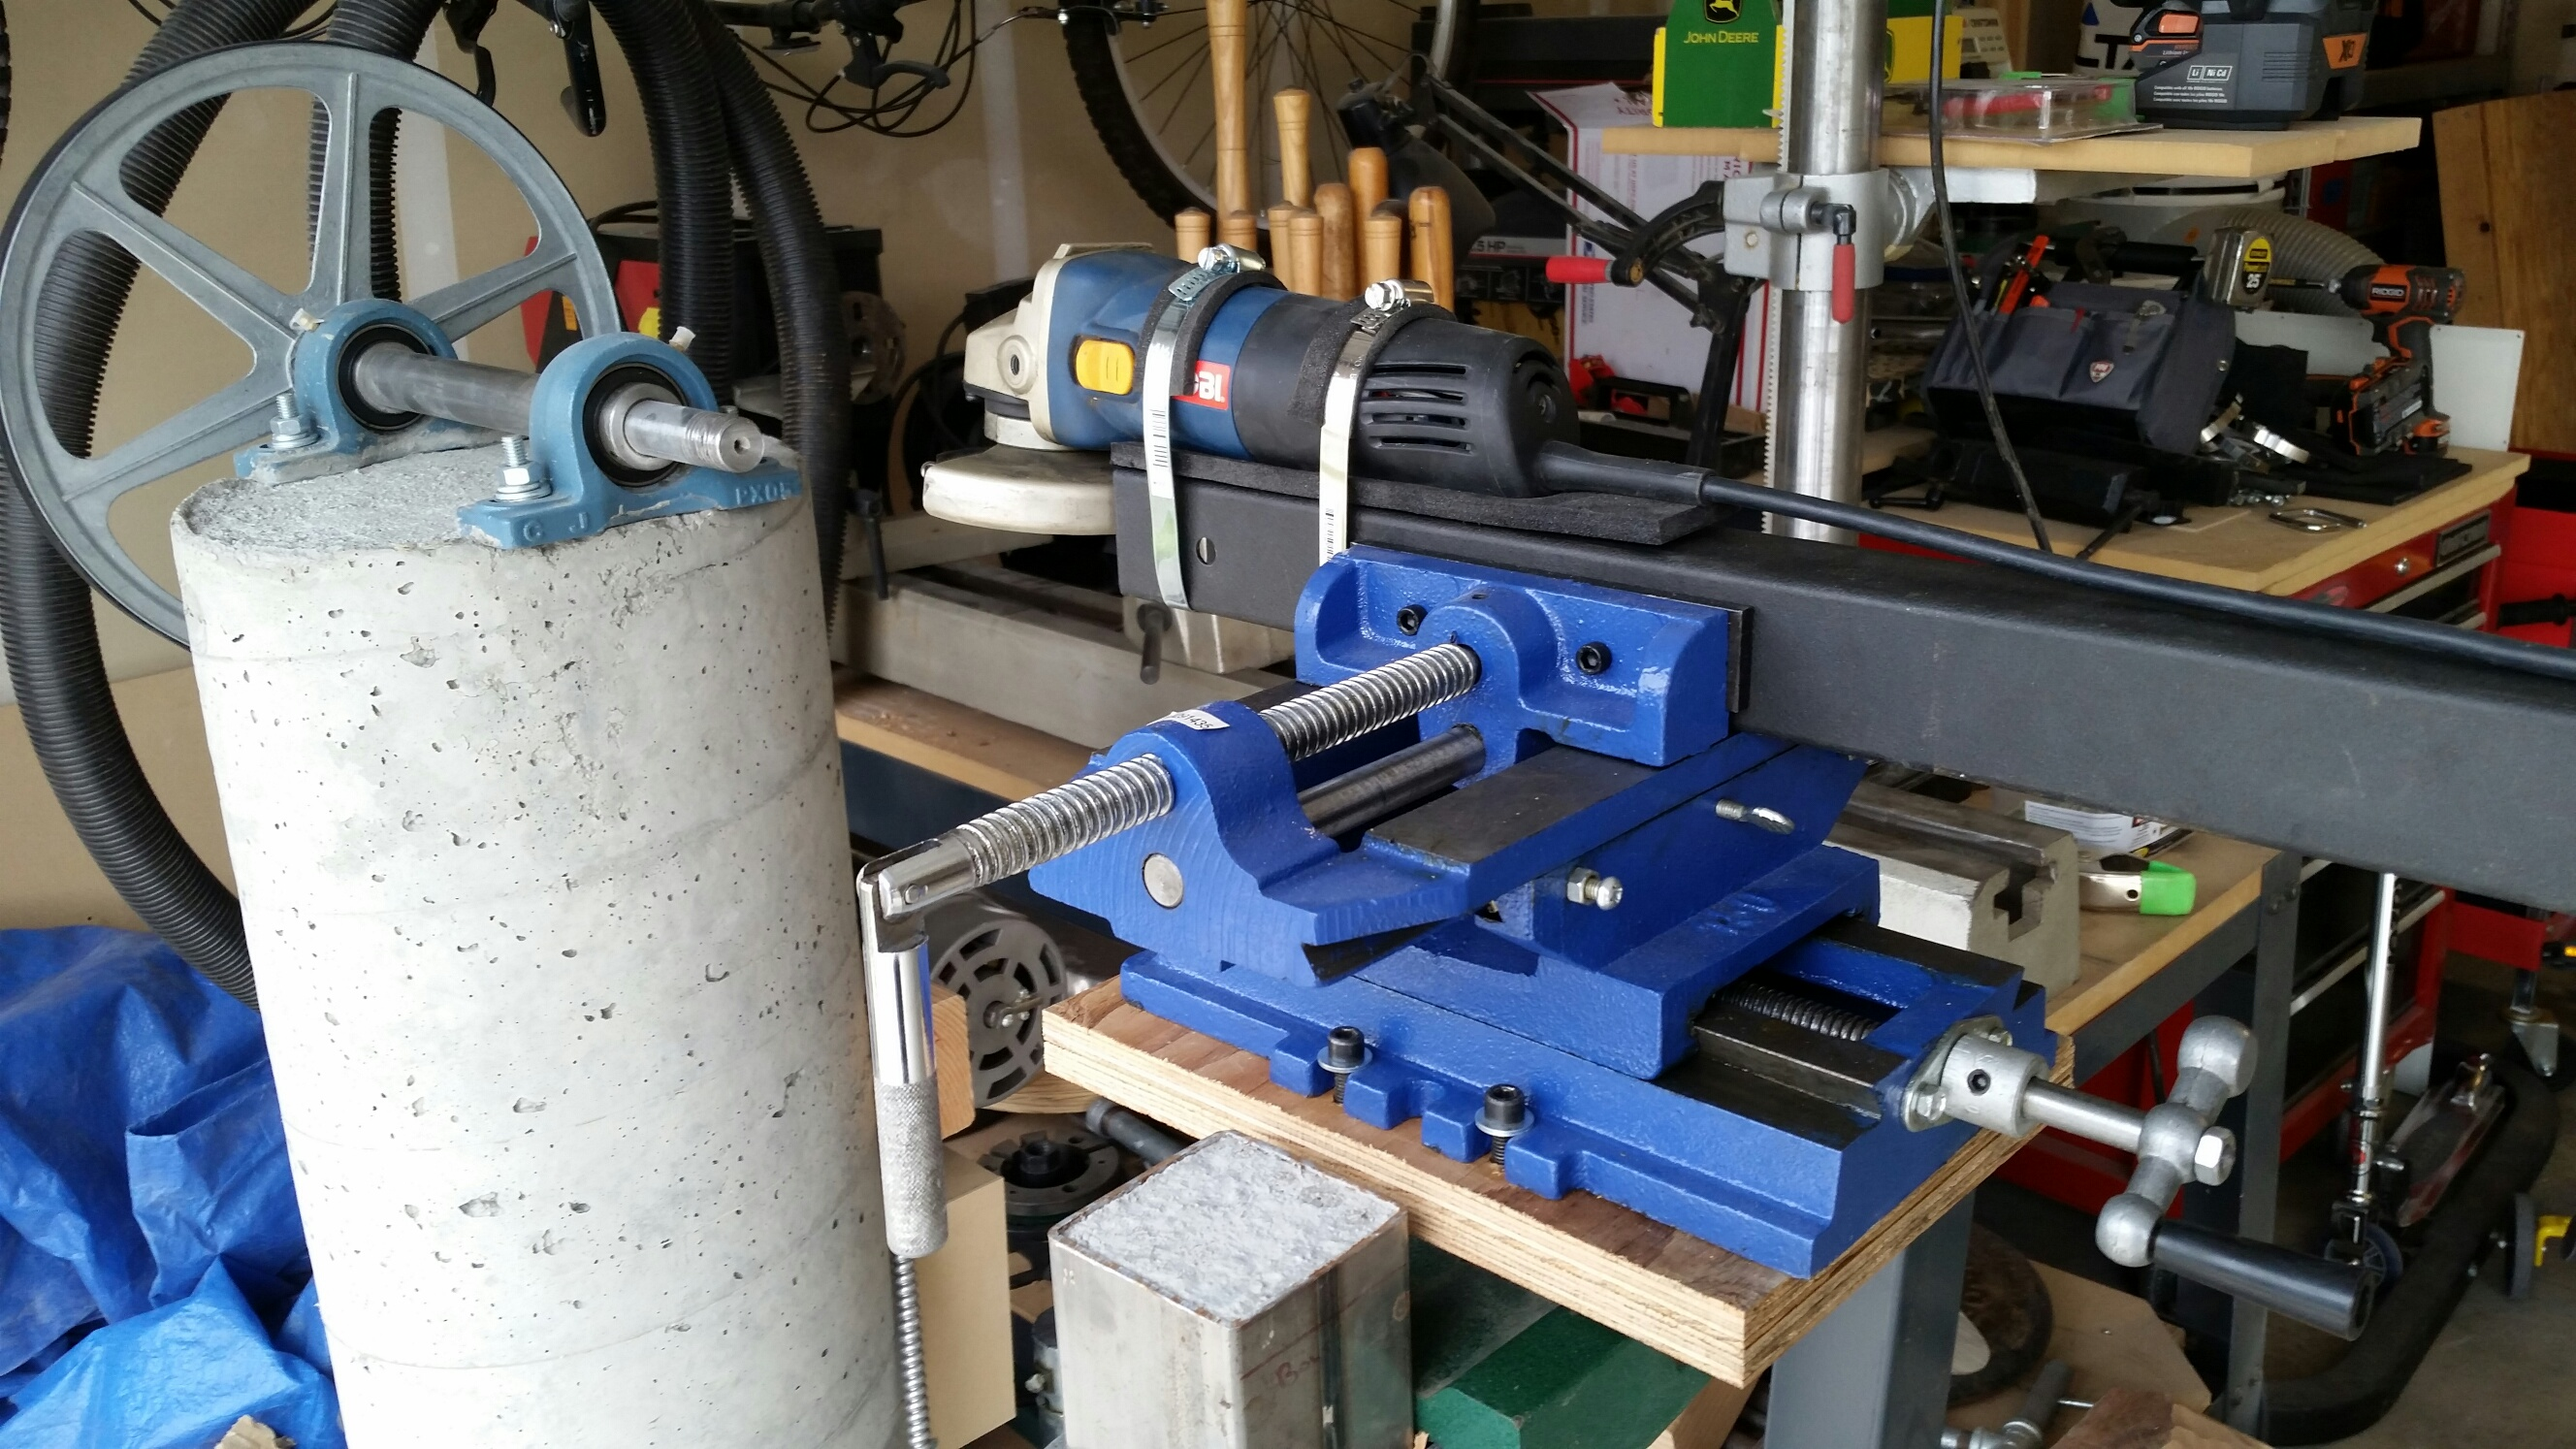 Homemade headstock lathe